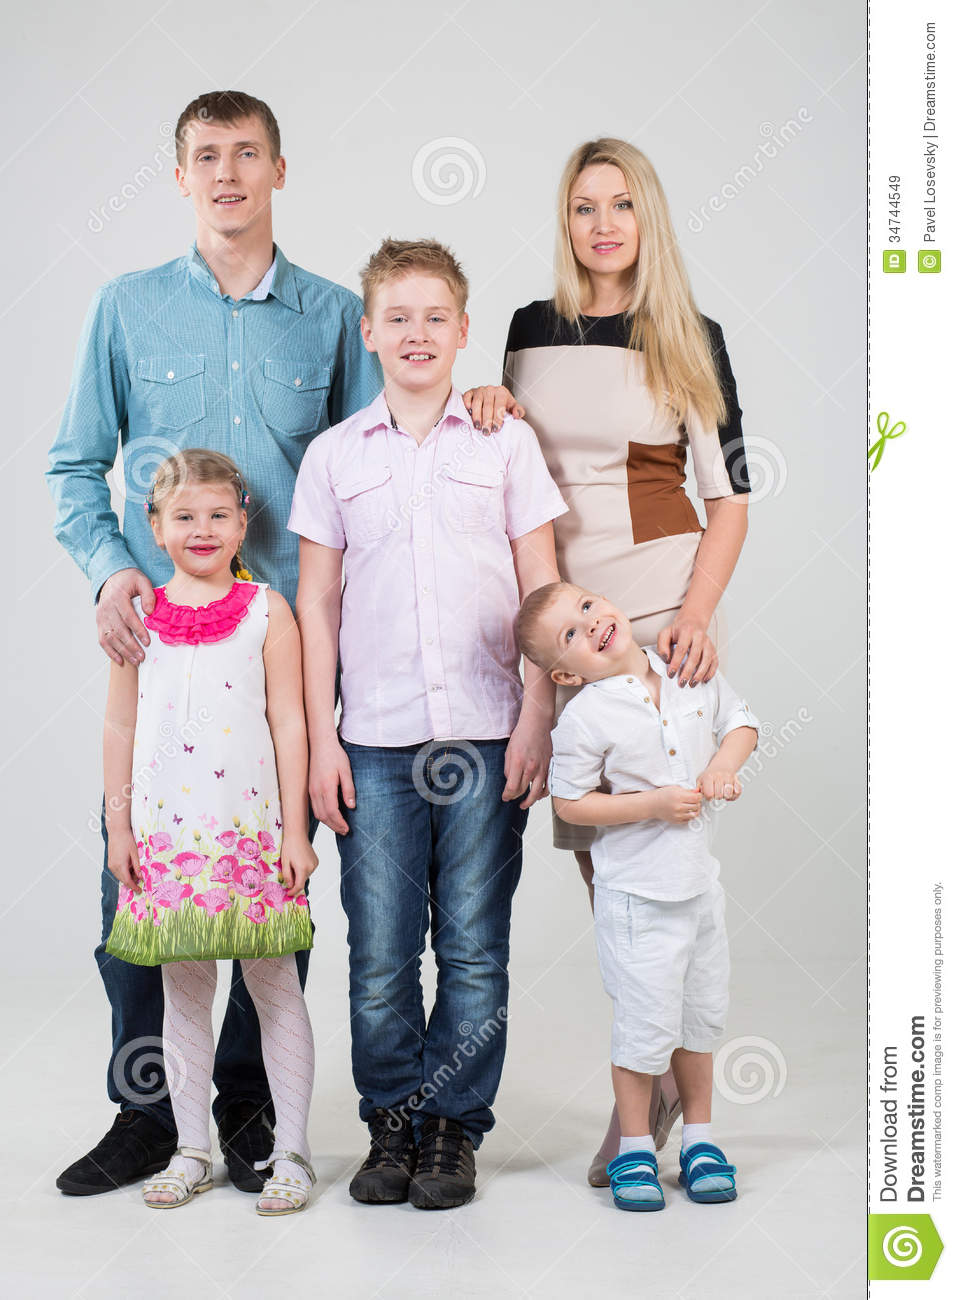 five happy youngest looks studio father son preview dreamstime